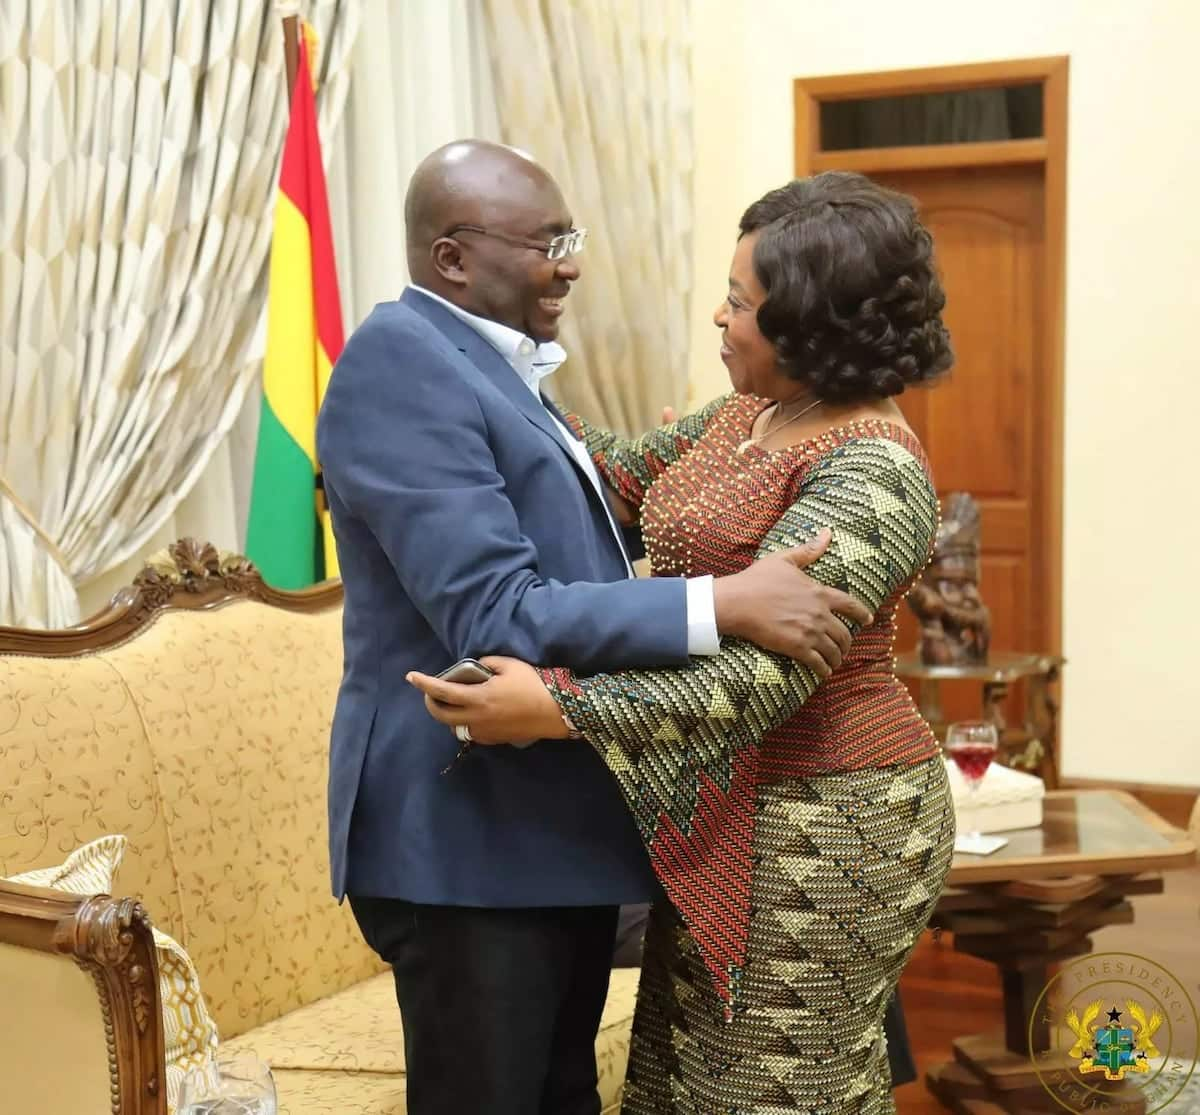 Dr Bawumia hugs Minister of Foreign Affairs, Shirley Ayorkor Botchwey at the Flagstaff House